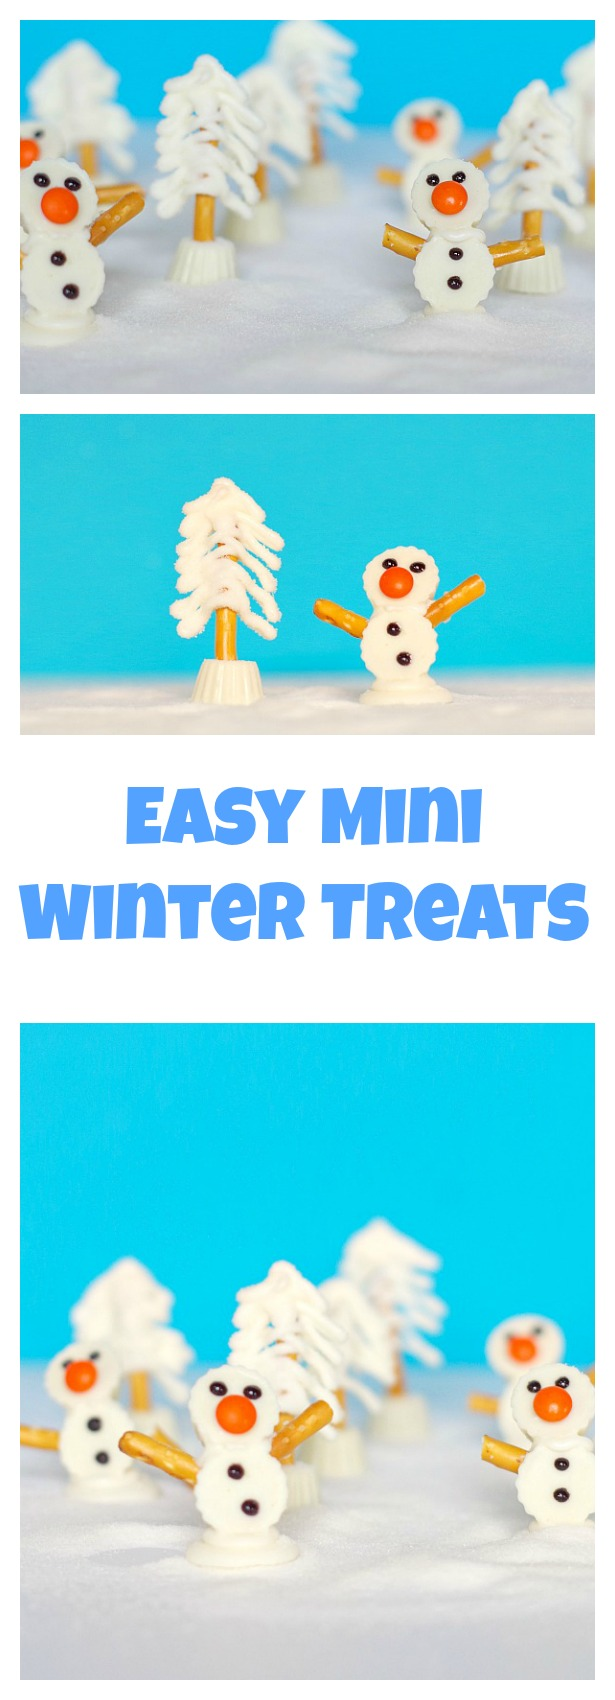 Easy Mini Winter Treats